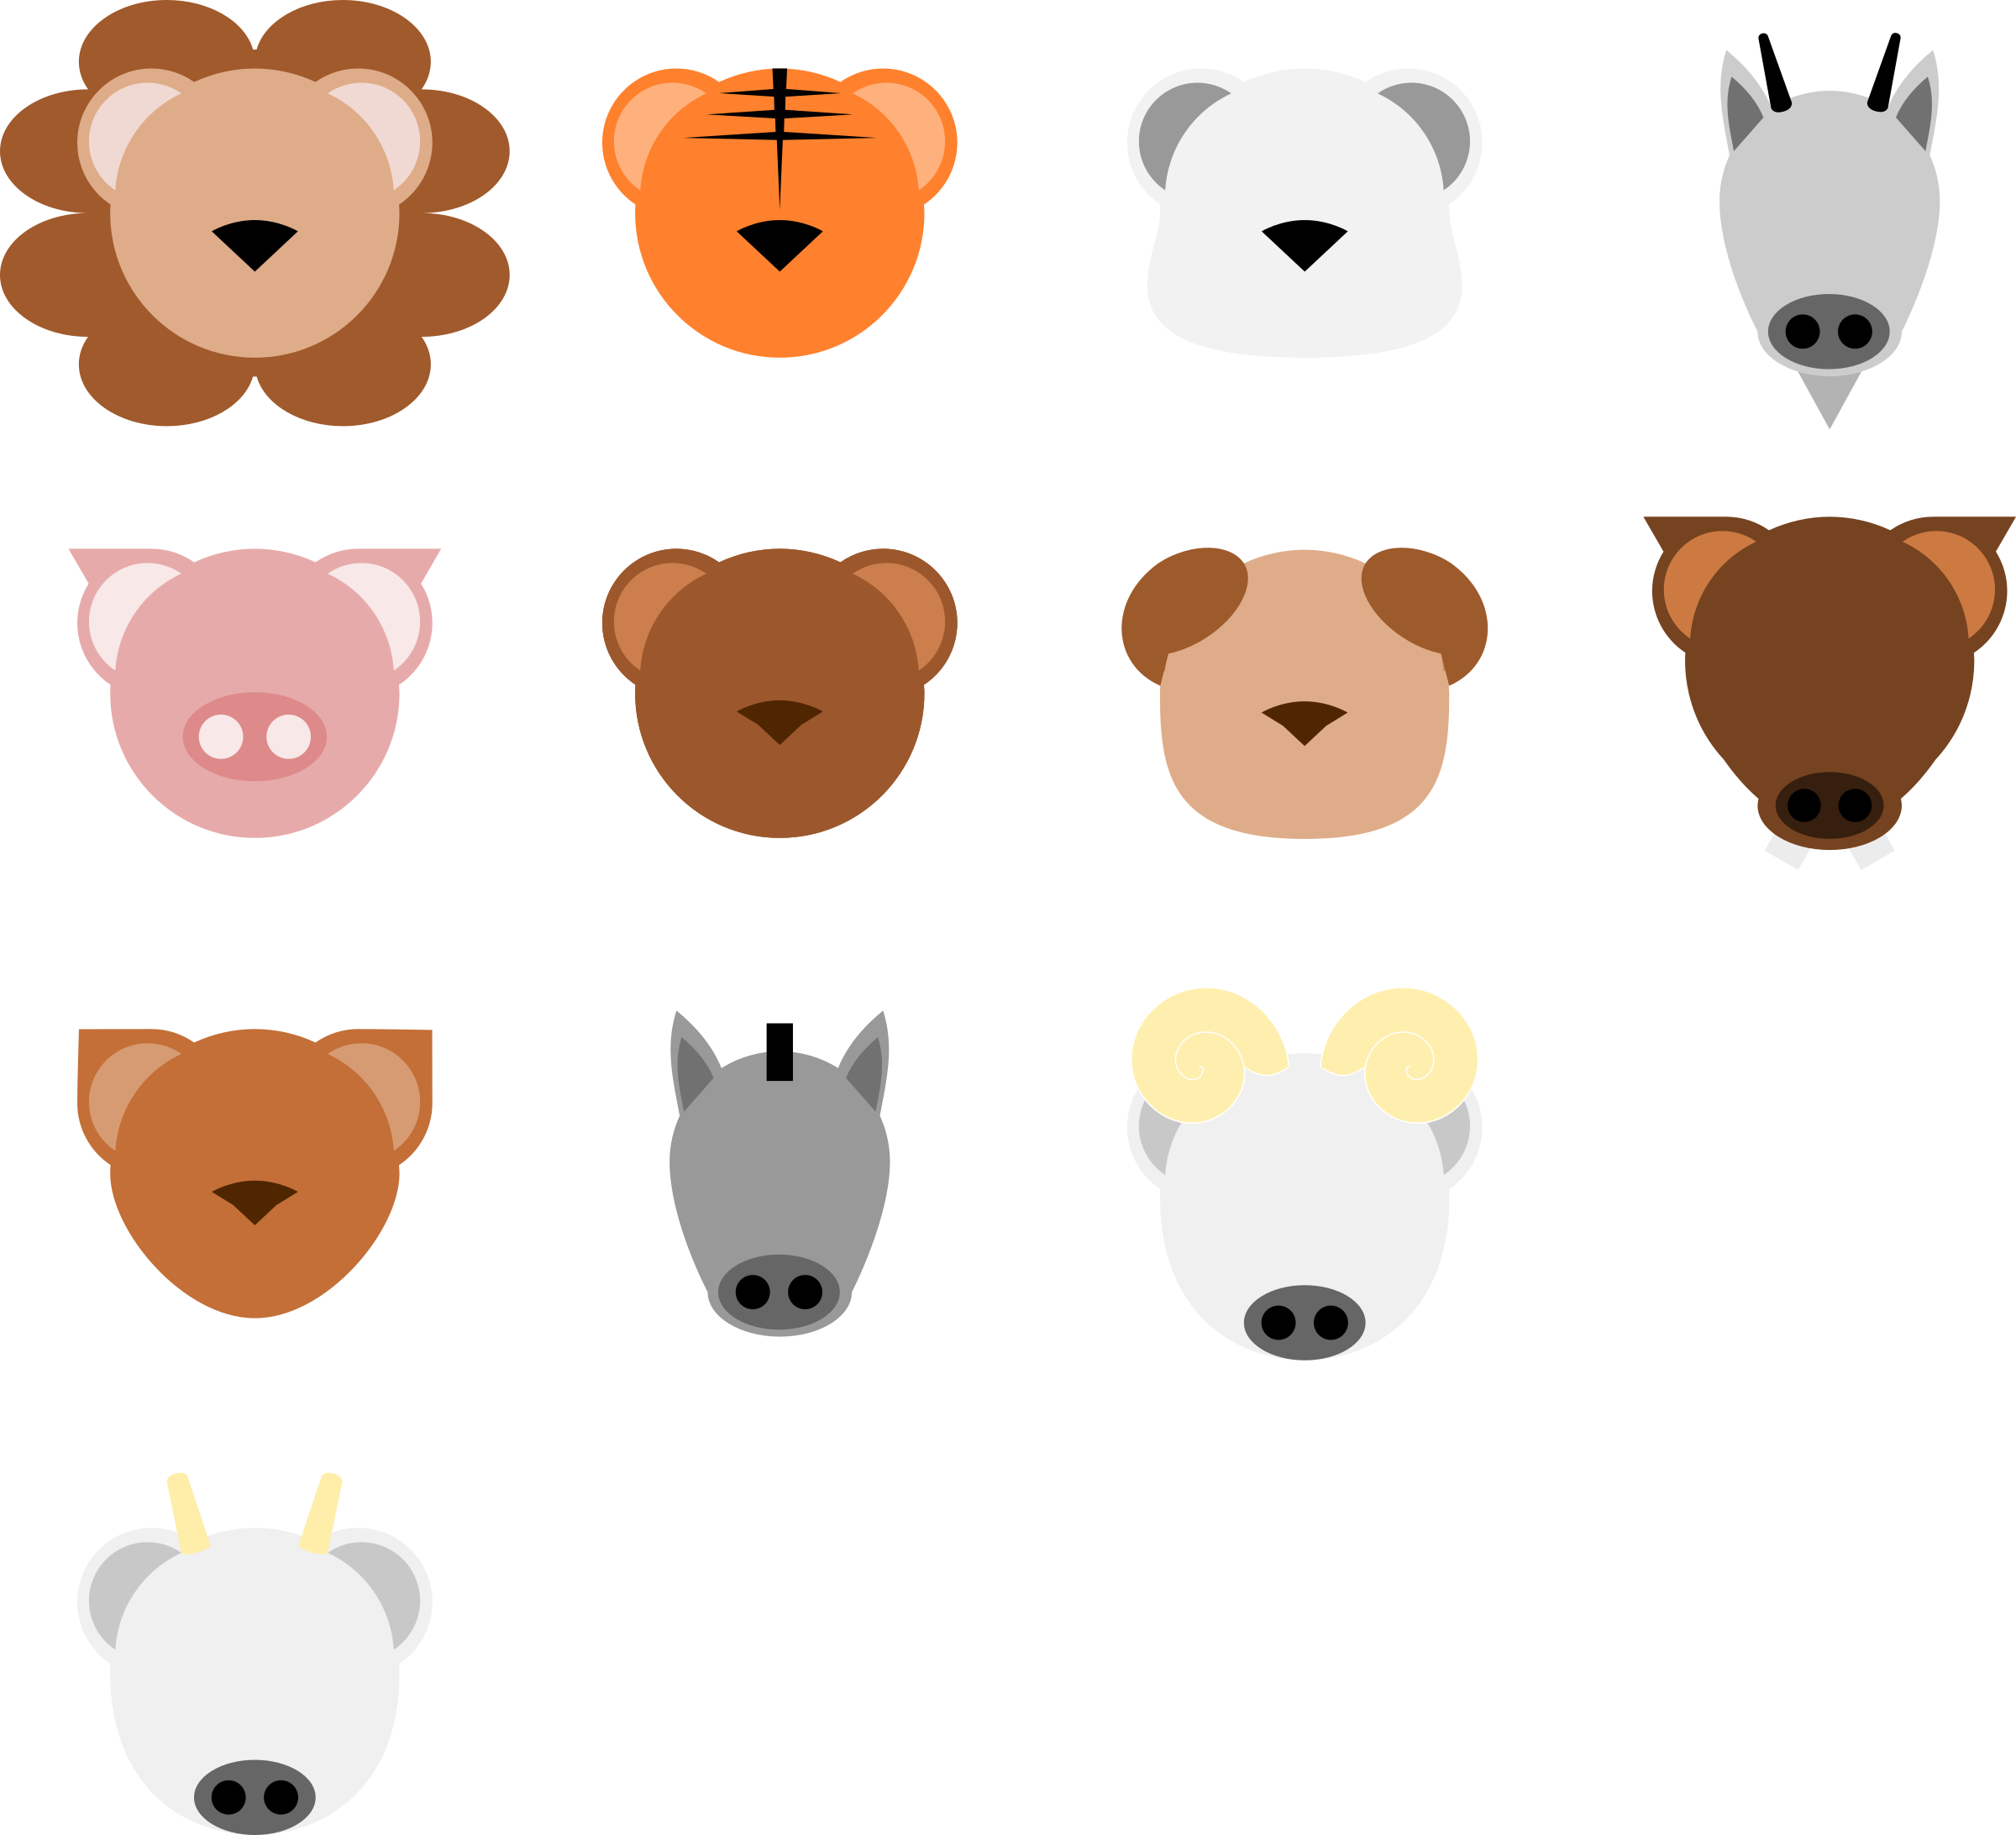 Magnifying clipart minimalist. Animal face by belthsazar